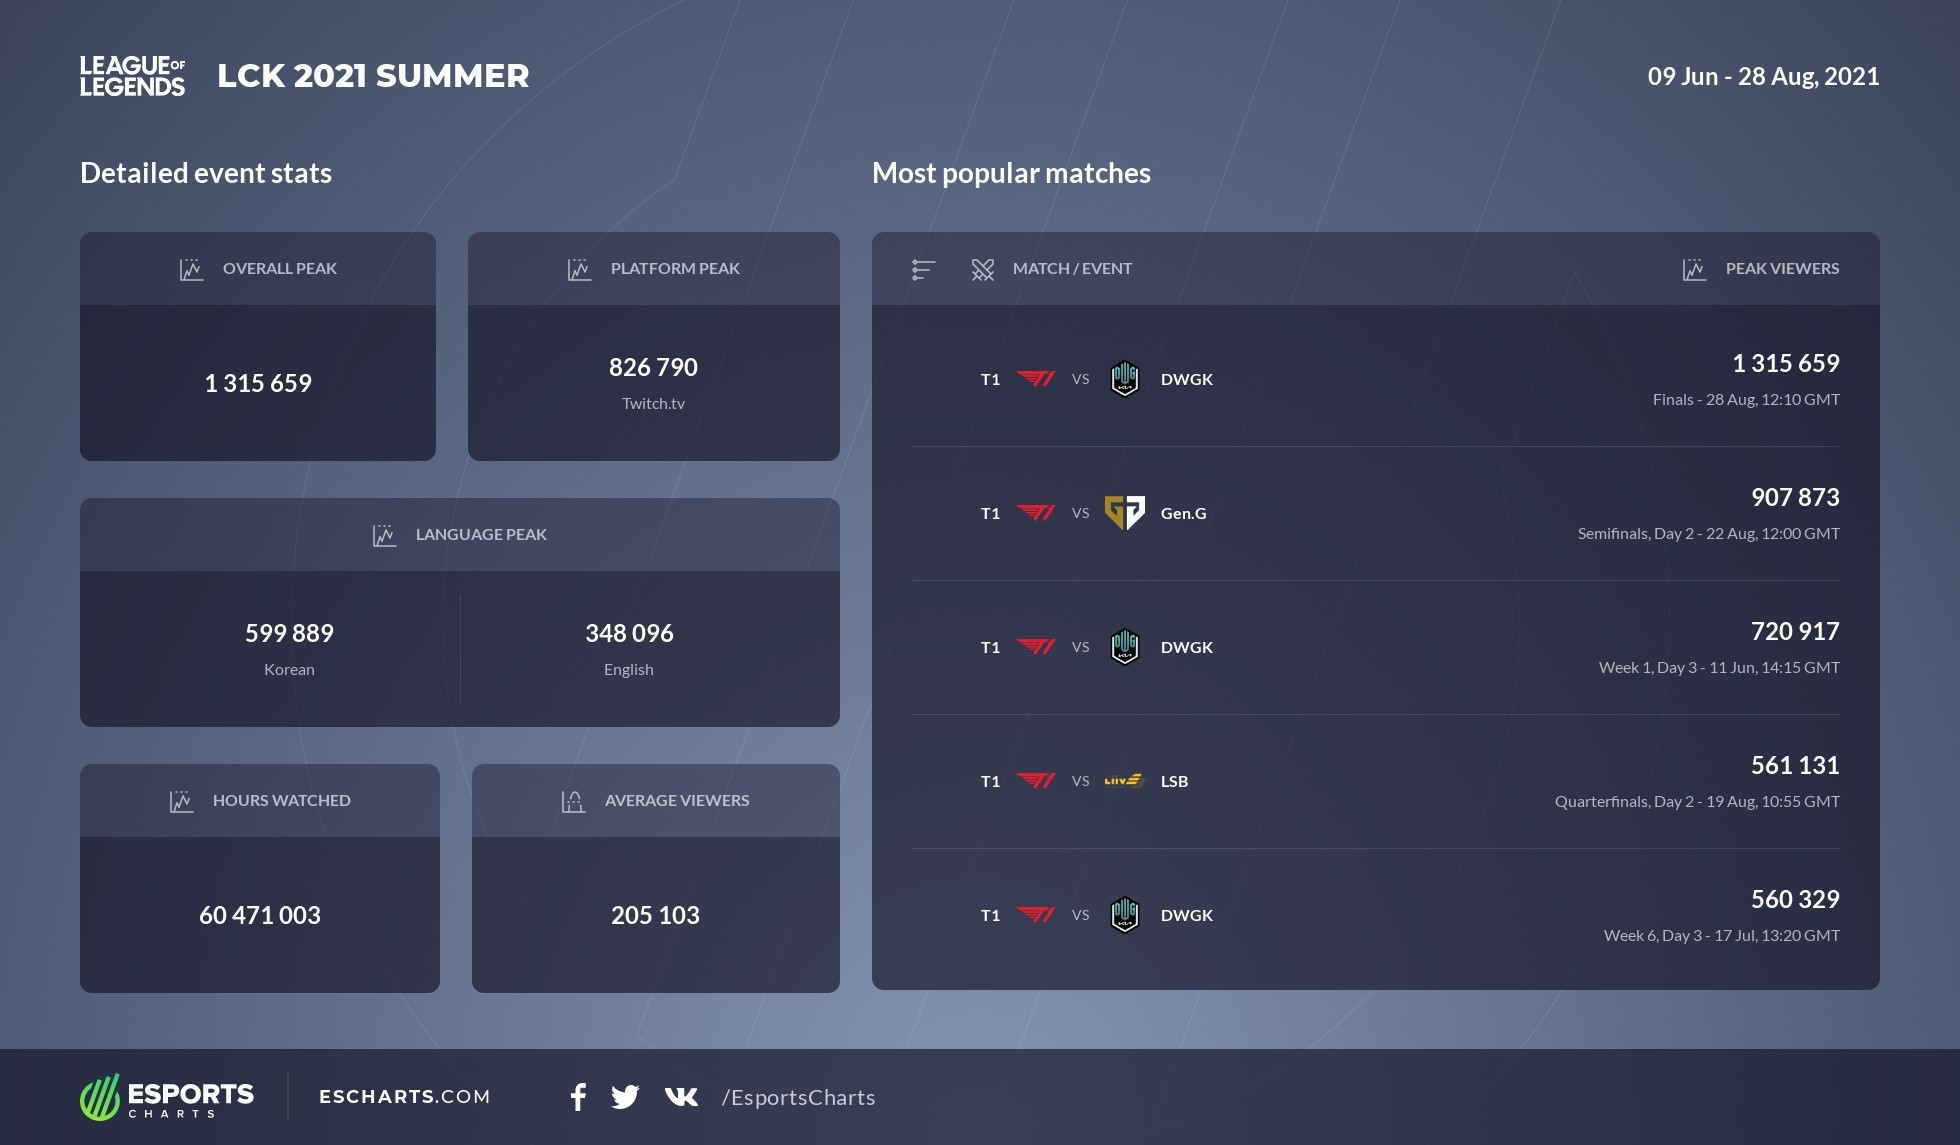 Results of LCK 2021 Summer